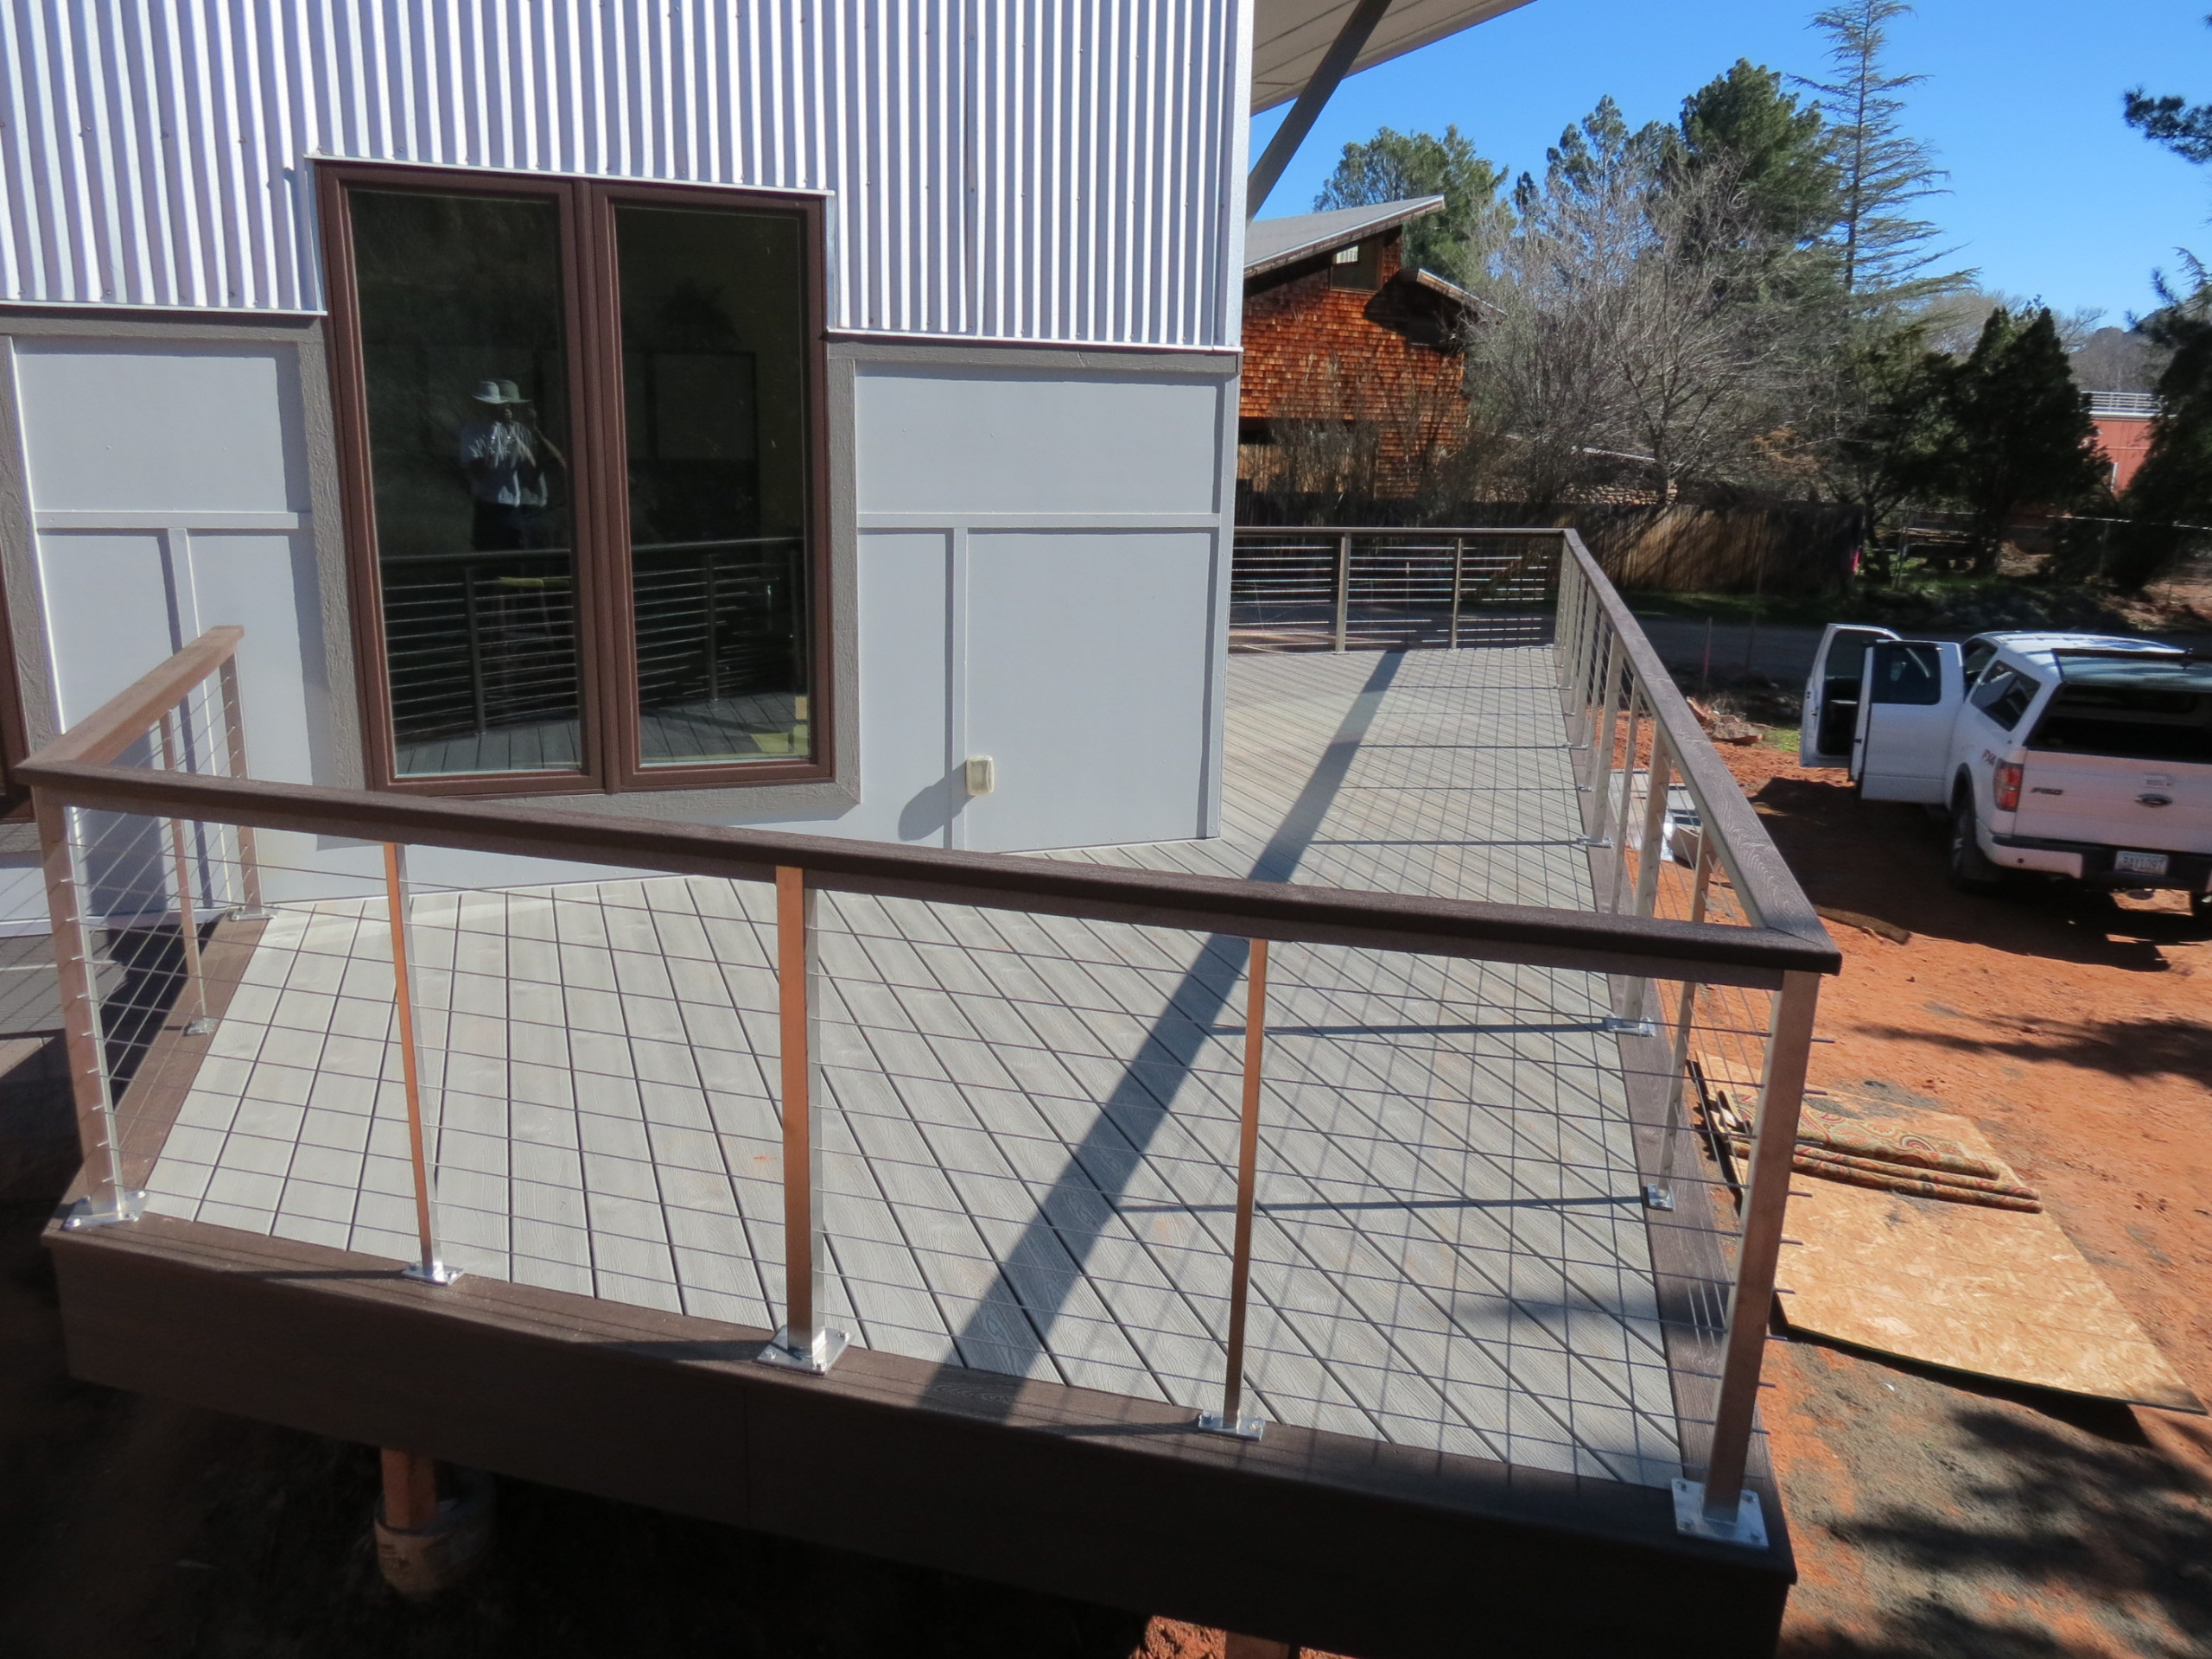 Composite decking and stainless railing